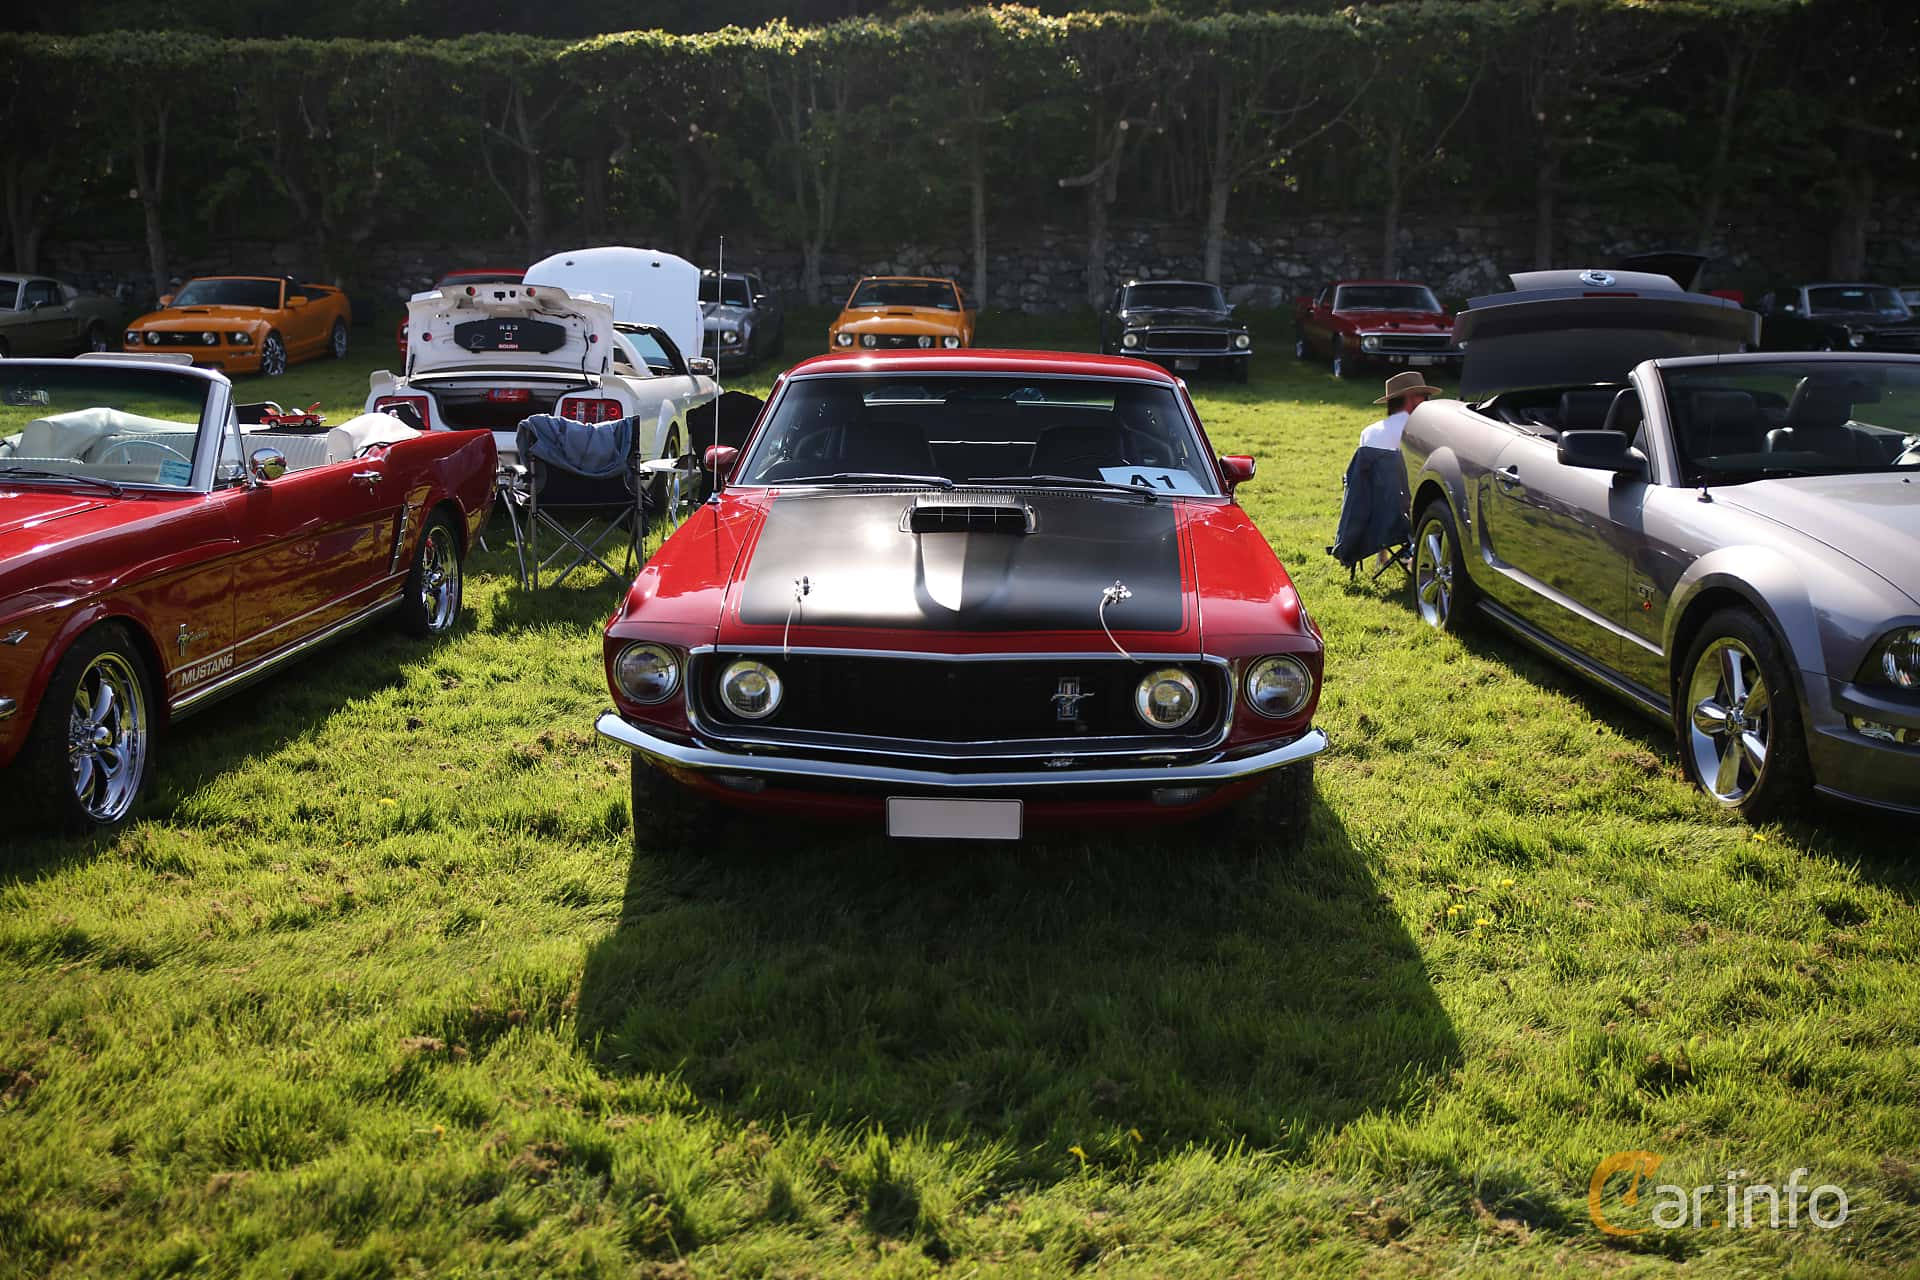 Ford Mustang Mach I 5.8 V8 Automatic, 254hp, 1969 at Tjolöholm Classic Motor 2018